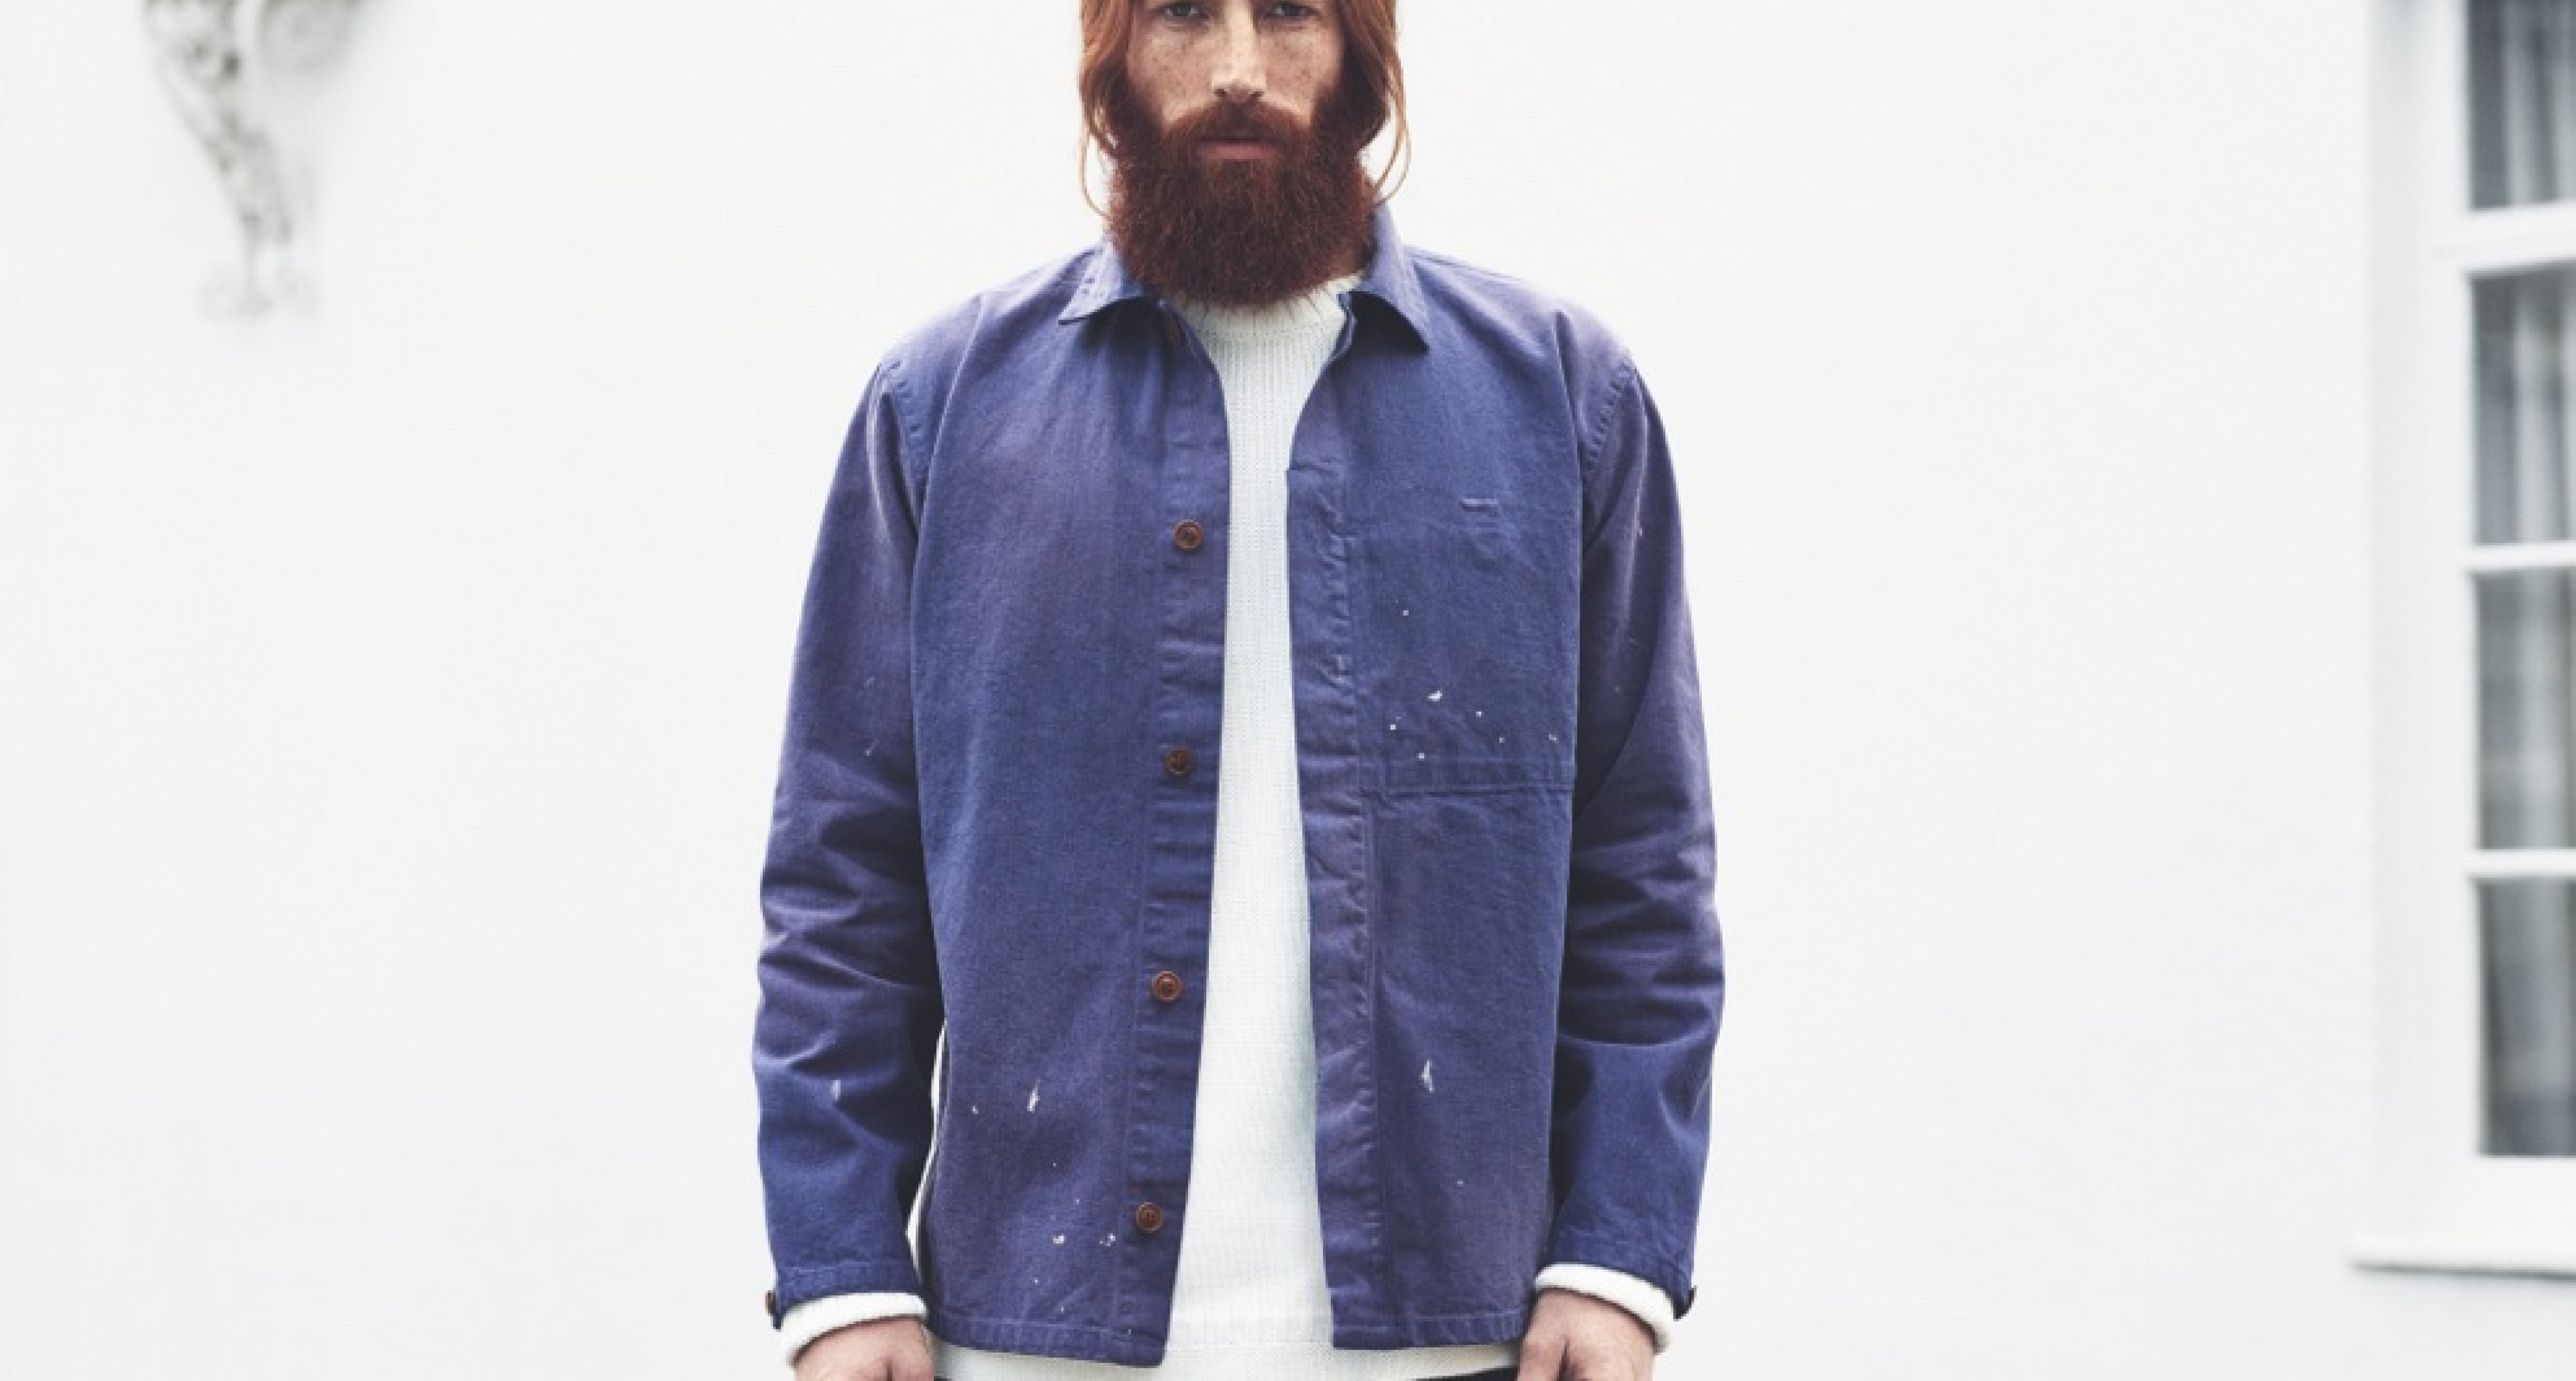 Inspired by the Artist David Hockney the Barbour x Norton & Sons Beacon Collection